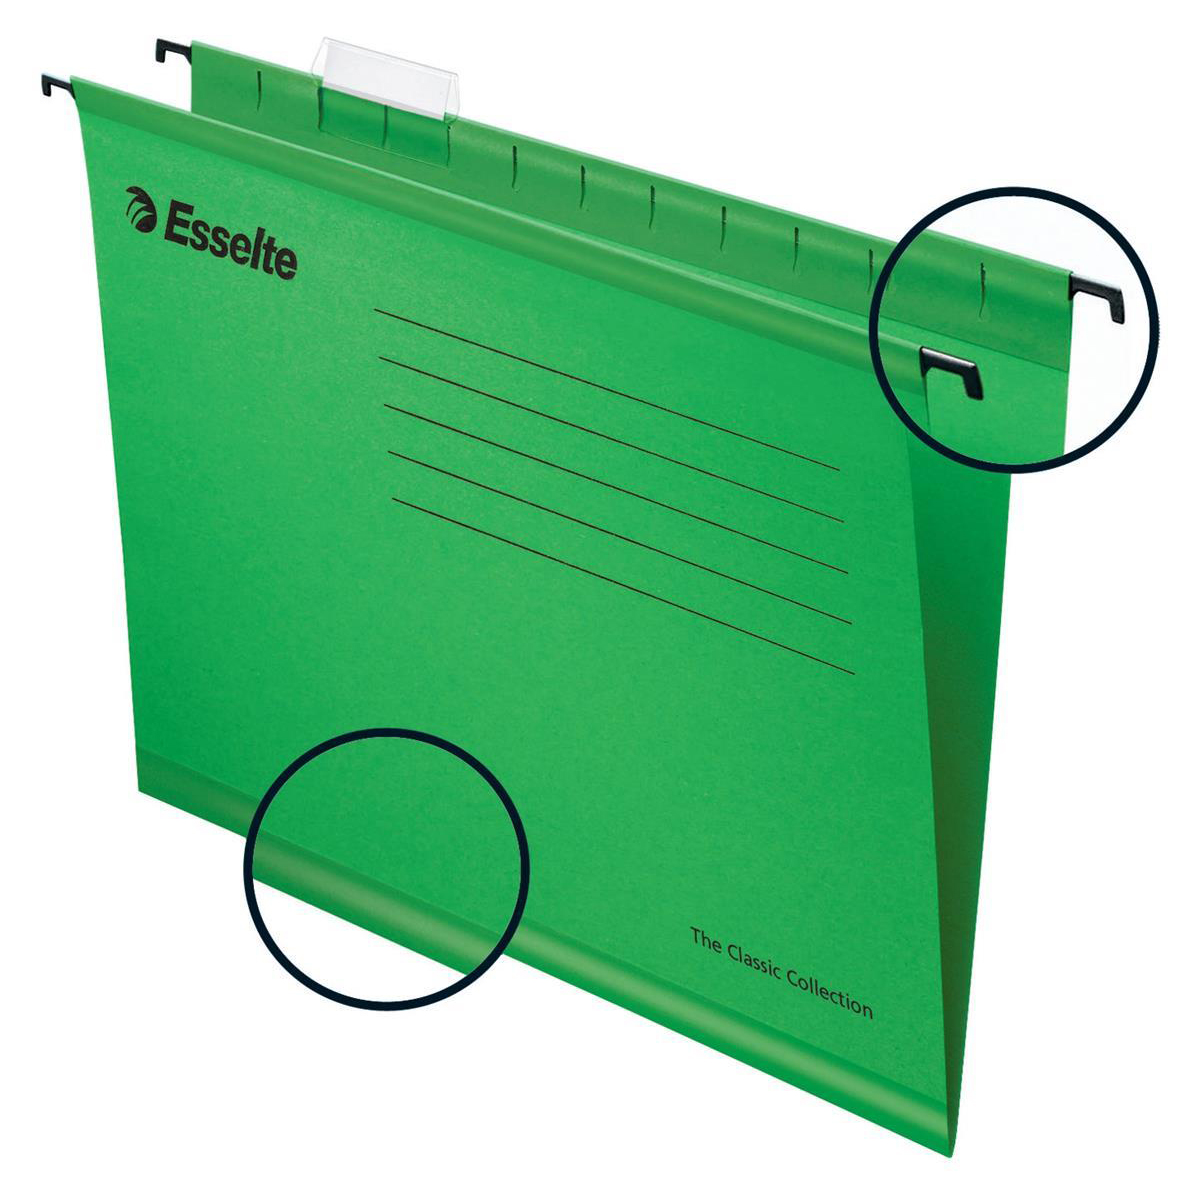 Esselte Classic Reinforced Suspension File Manilla 15mm V-base 210gsm Foolscap Green Ref 90337 Pack 25